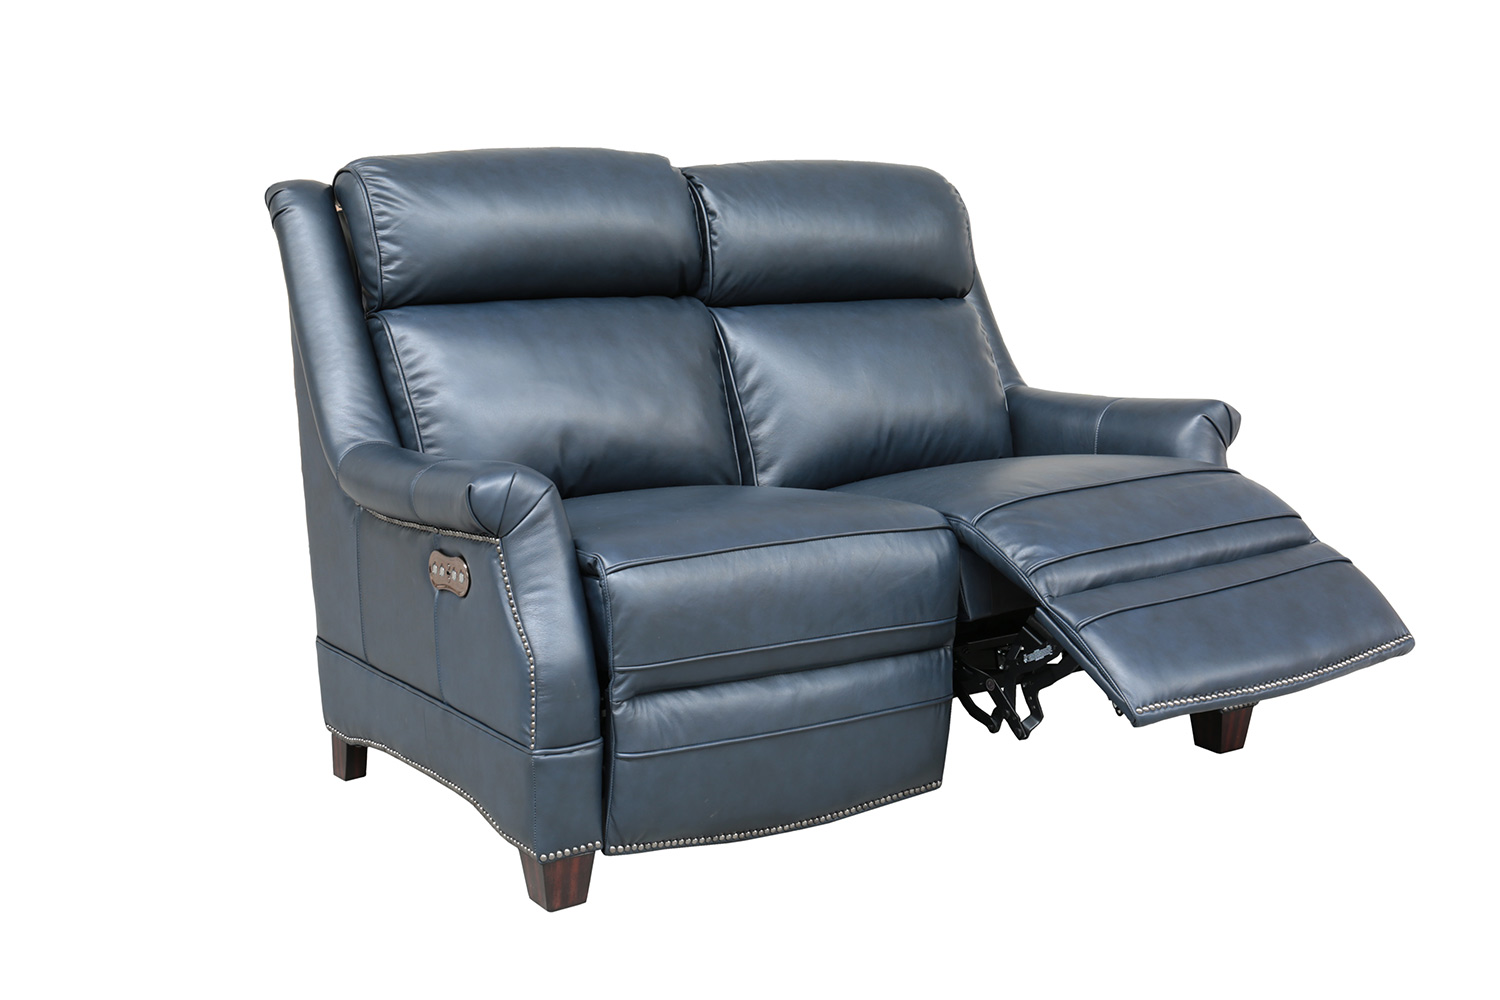 Barcalounger Warrendale Power Reclining Loveseat with Power Head Rests - Shoreham Blue/All Leather